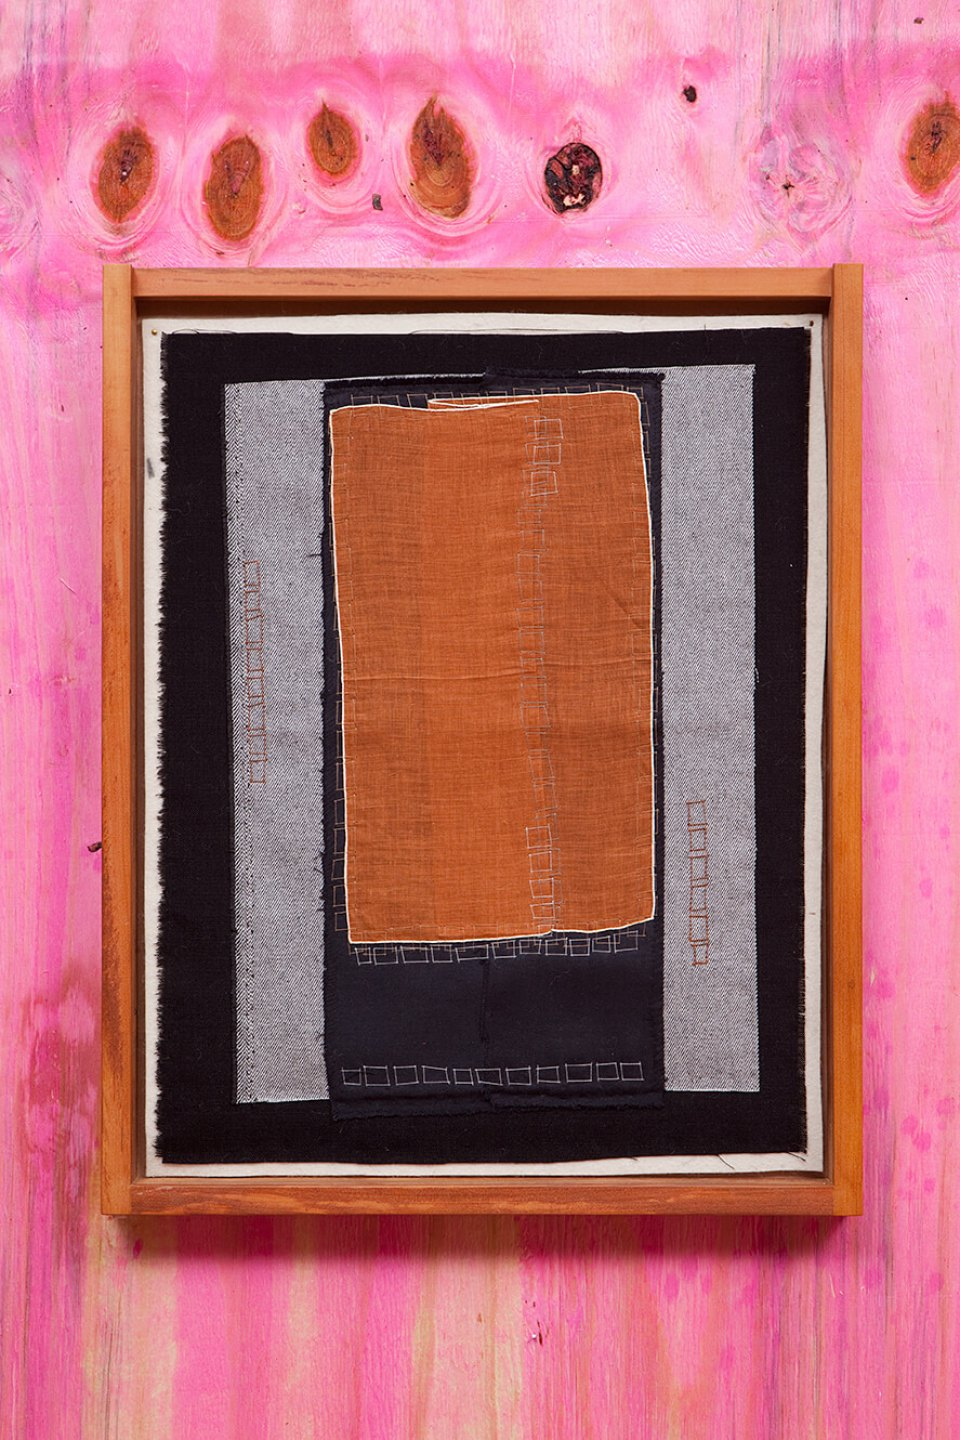 f.marquespeteado,&nbsp;<em>Malaise neo-concretista 03,</em>&nbsp;2011, linens, cottons and wools hand-embroidered on industrial felt, 52 × 40 cm - Mendes Wood DM